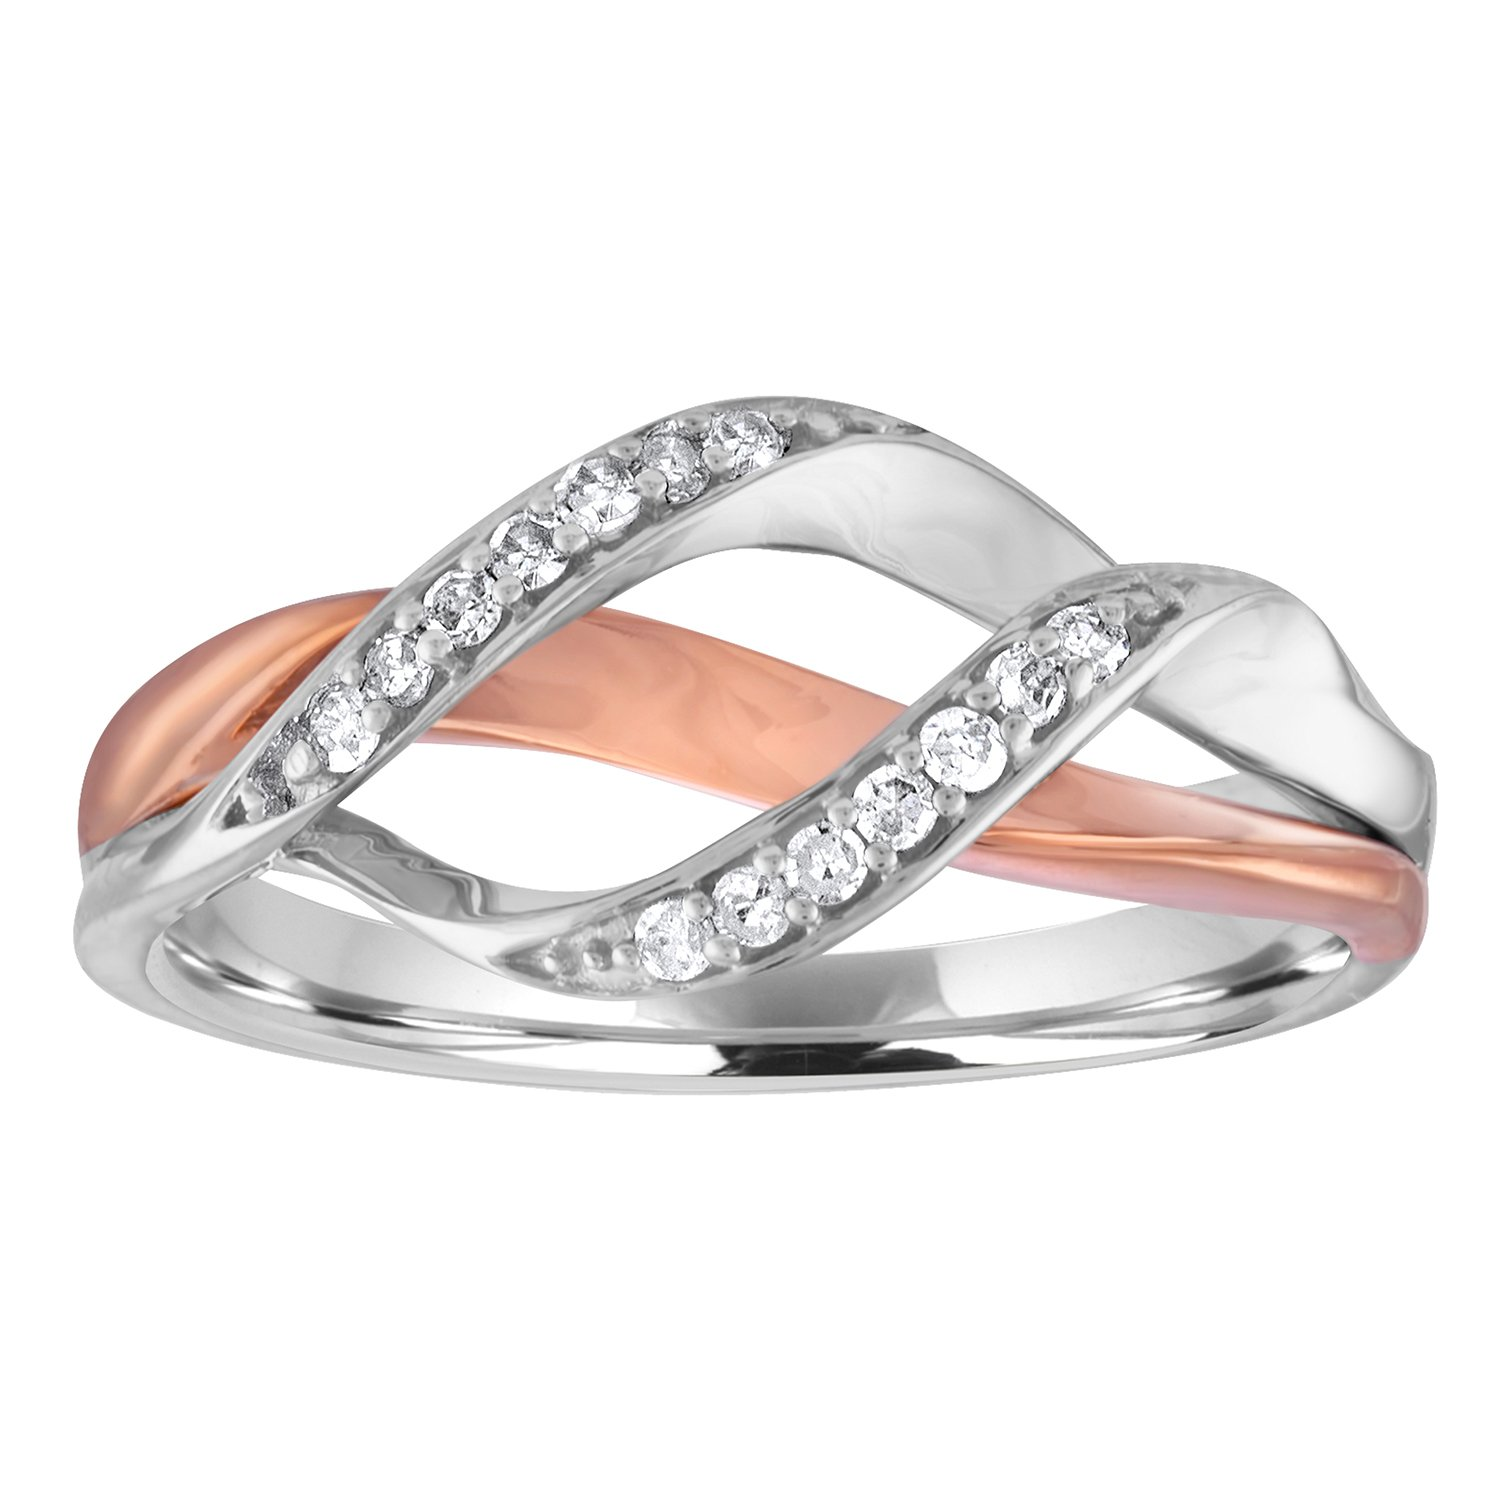 Diamond Band in 10K Rose Gold/Sterling Silver